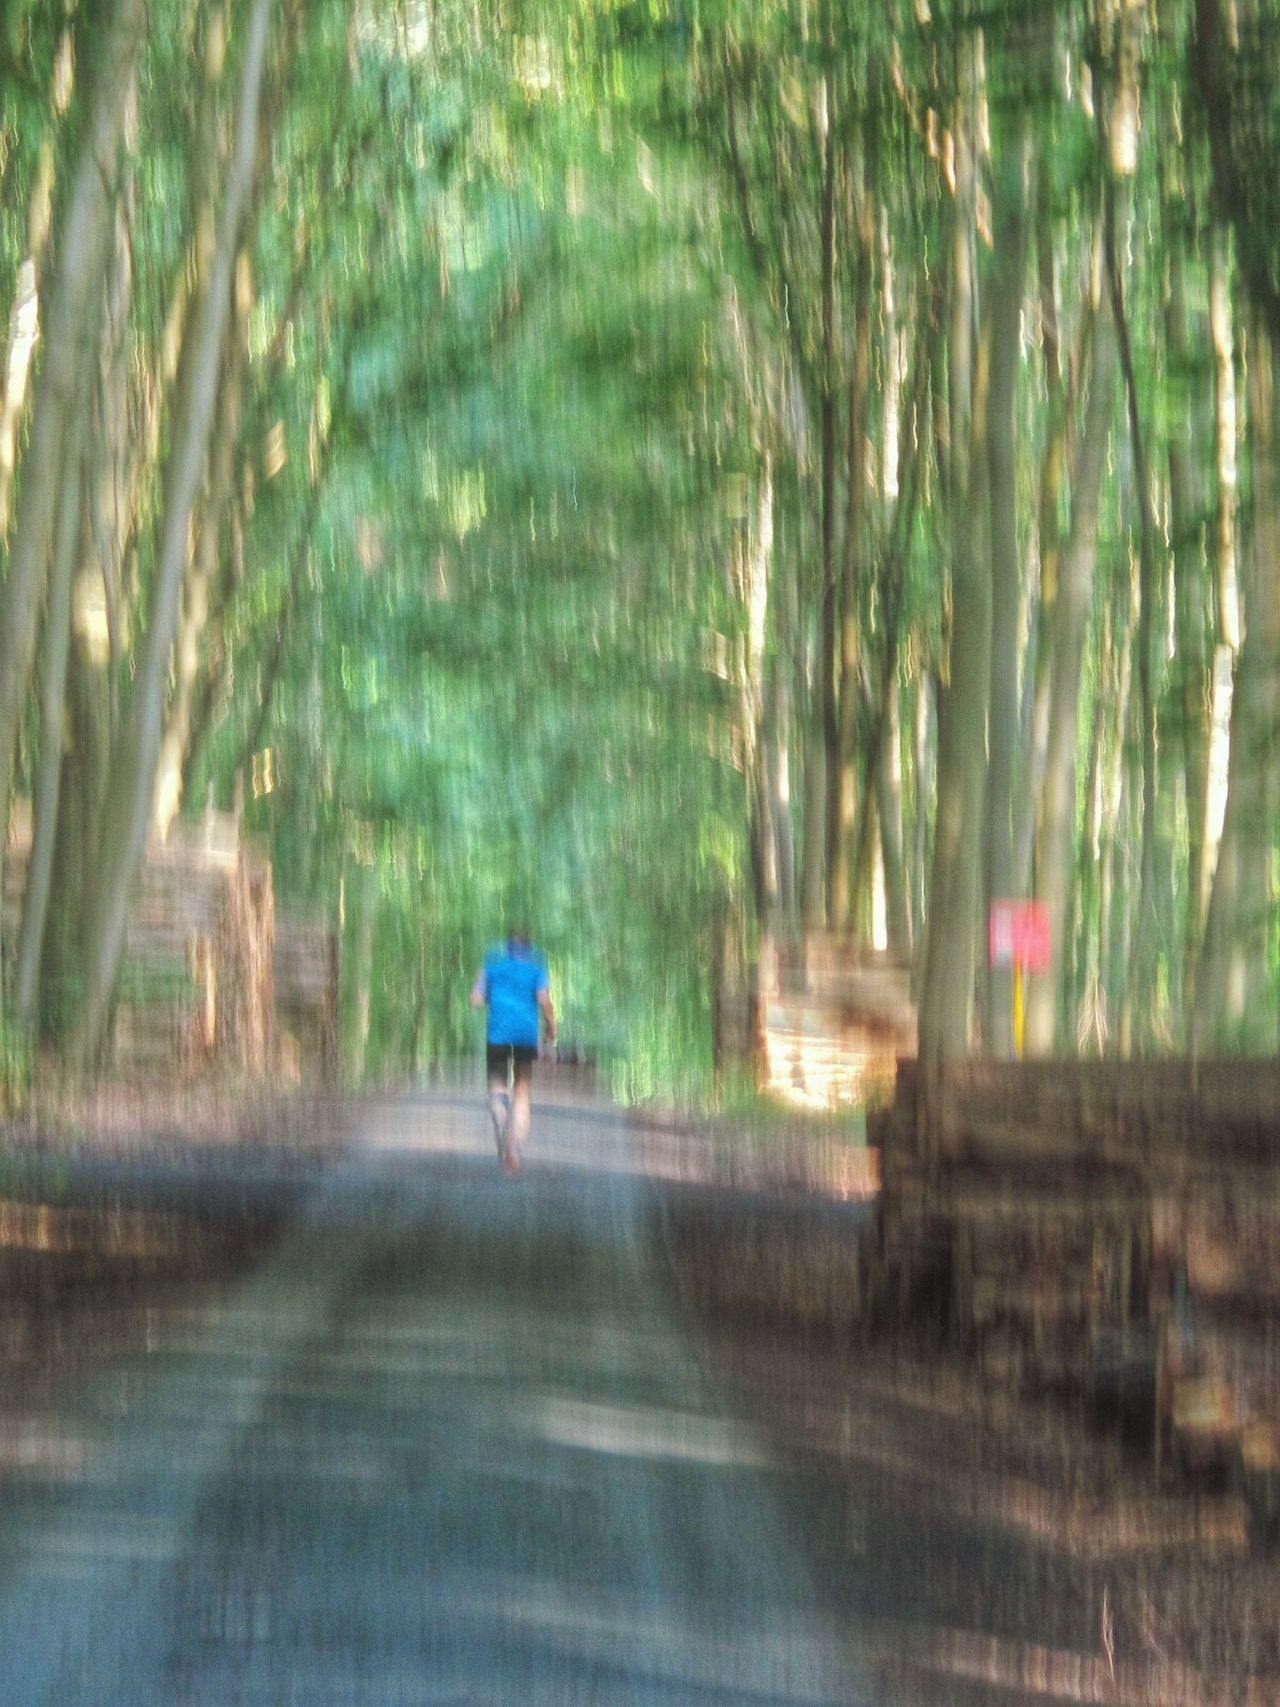 Jogging In The Woods Lonely Jogger In The Forest From Behind Running Creative Shots Movement Studies Unsharpness Foto ImpressionismTadaa Cityforest Frankfurt Am Main Germany🇩🇪 Showcase June